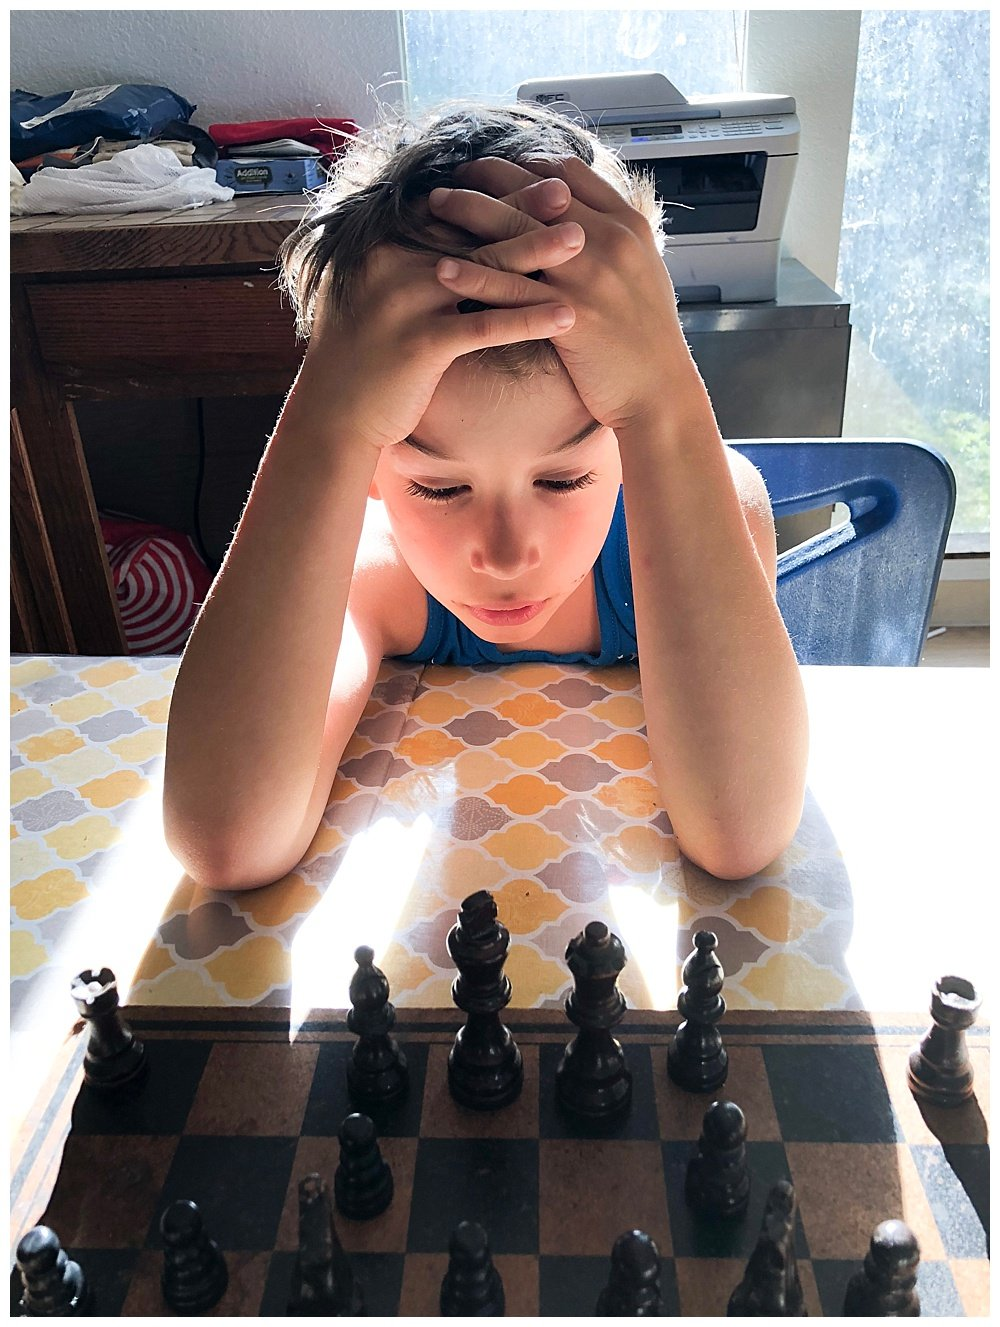 Life is hard. So is chess. Games should be FUN.